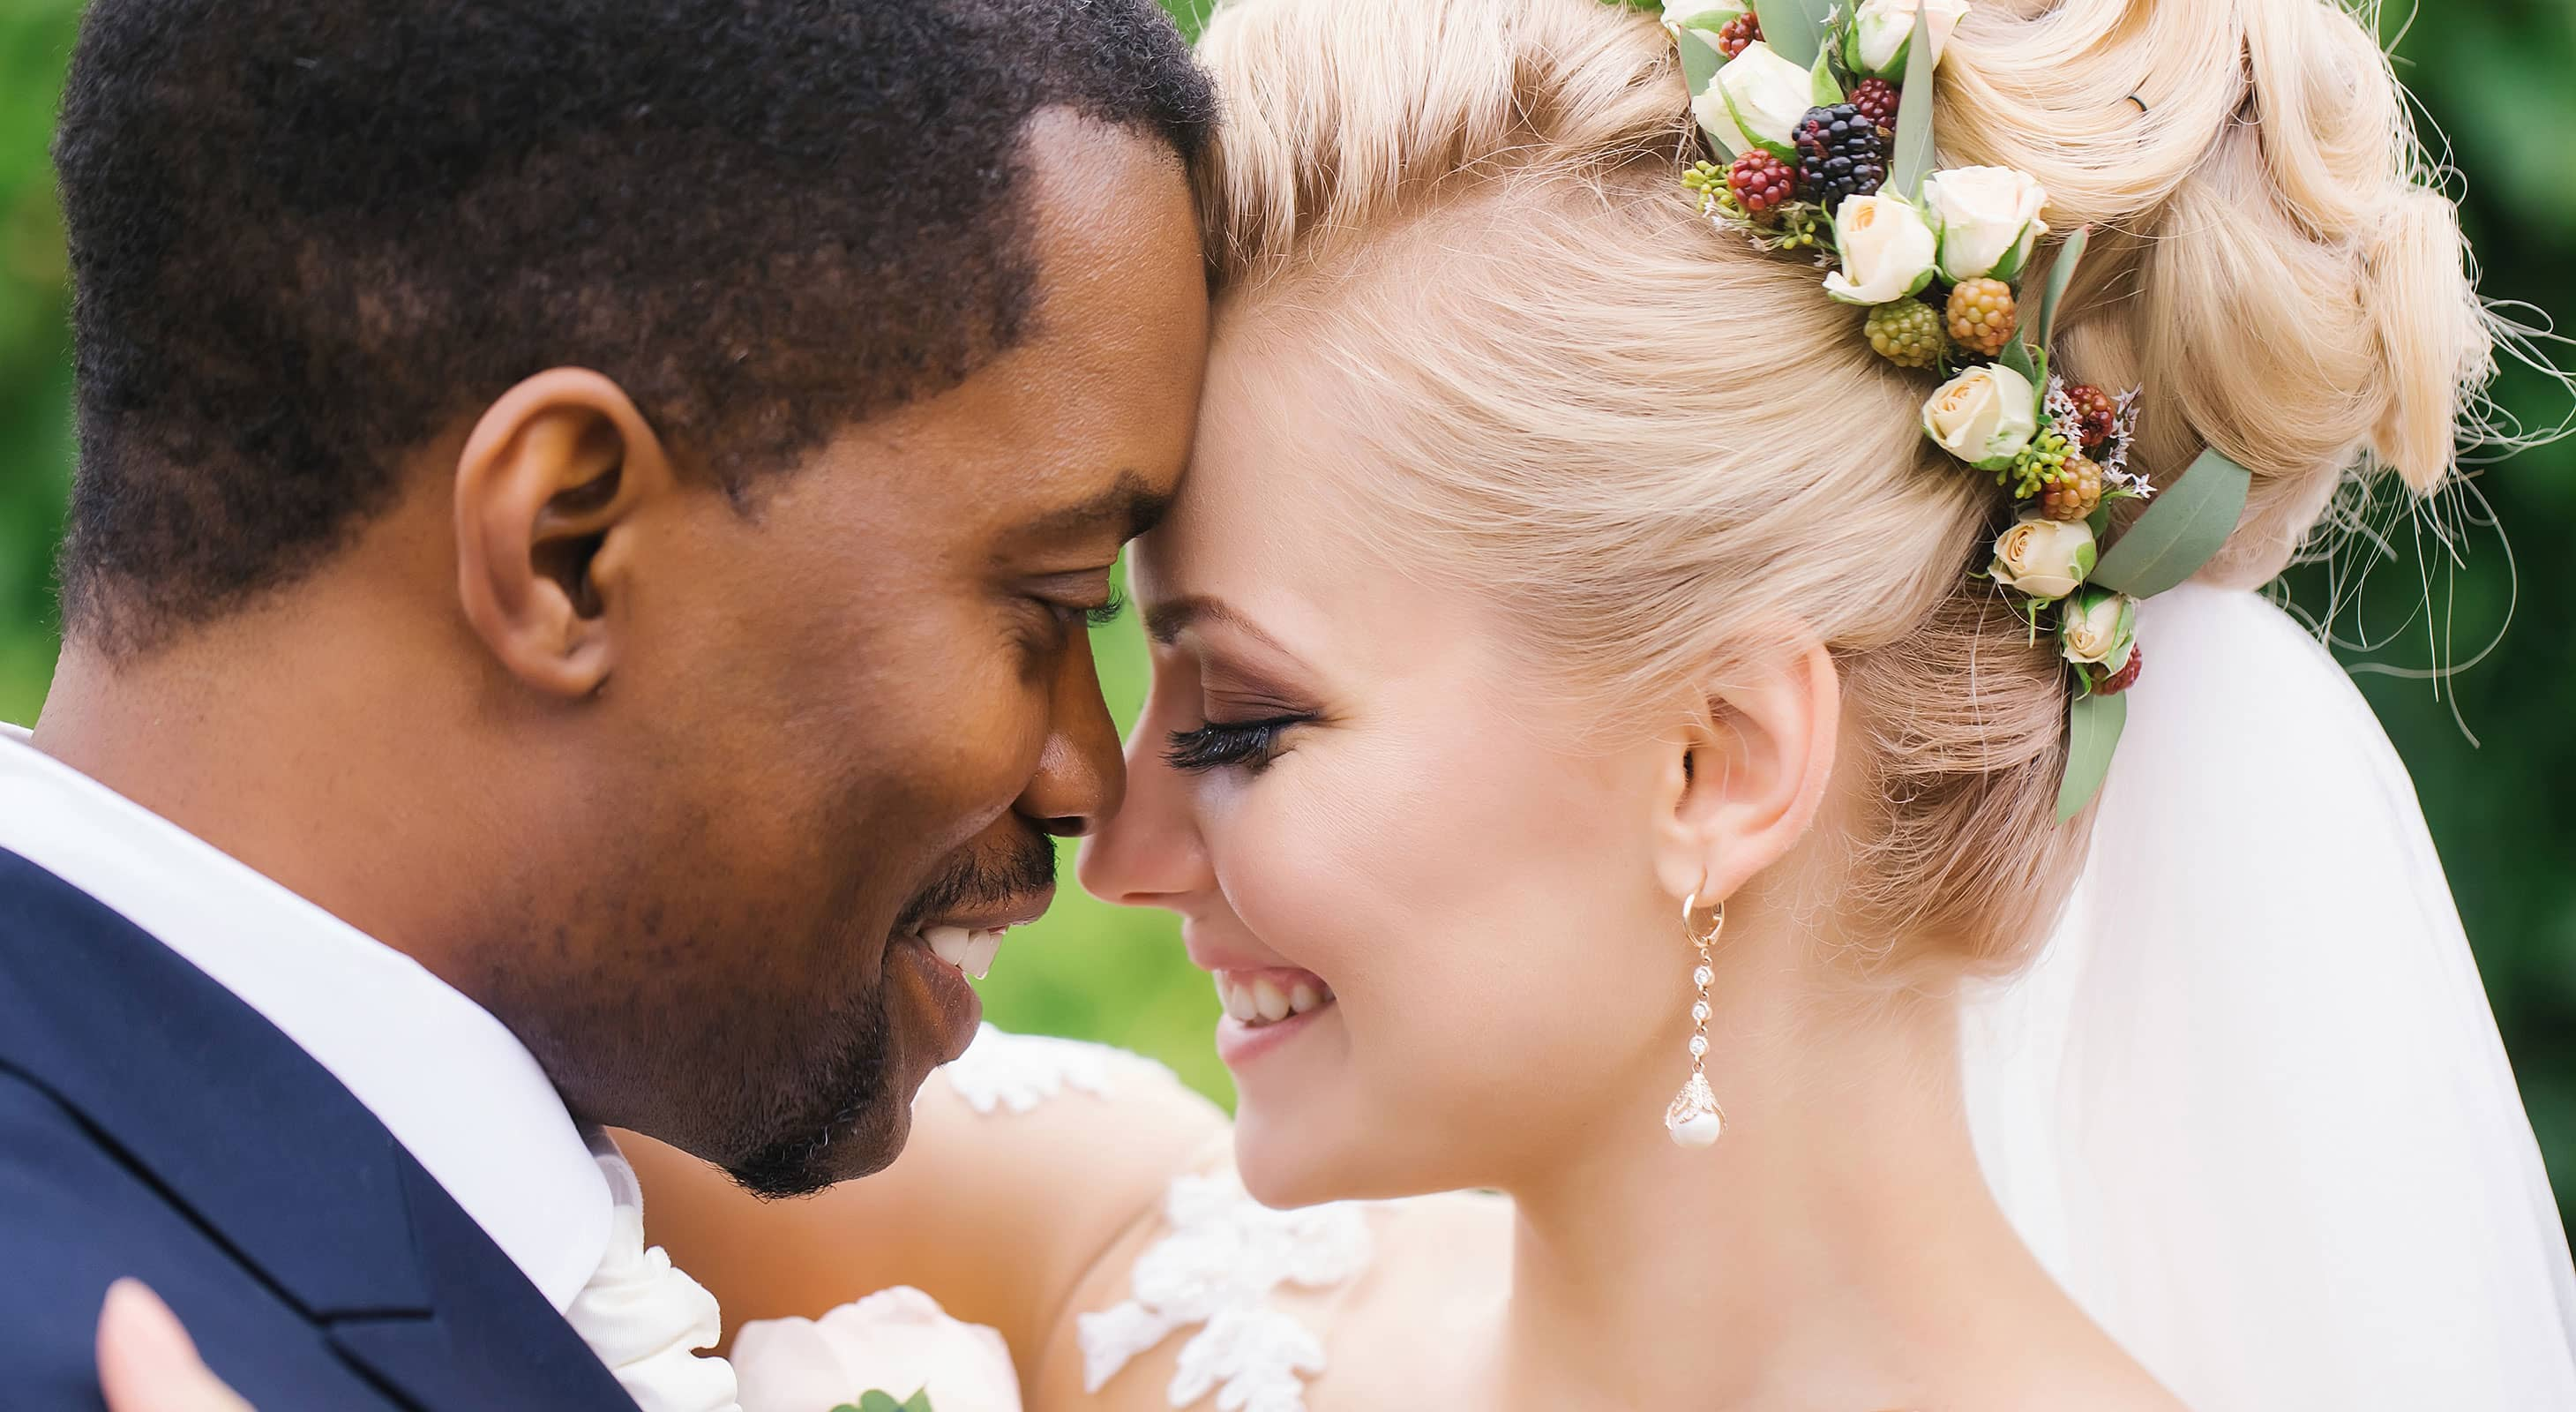 Bride and groom lovingly touch foreheads on their wedding day at our Bar Harbor wedding venue